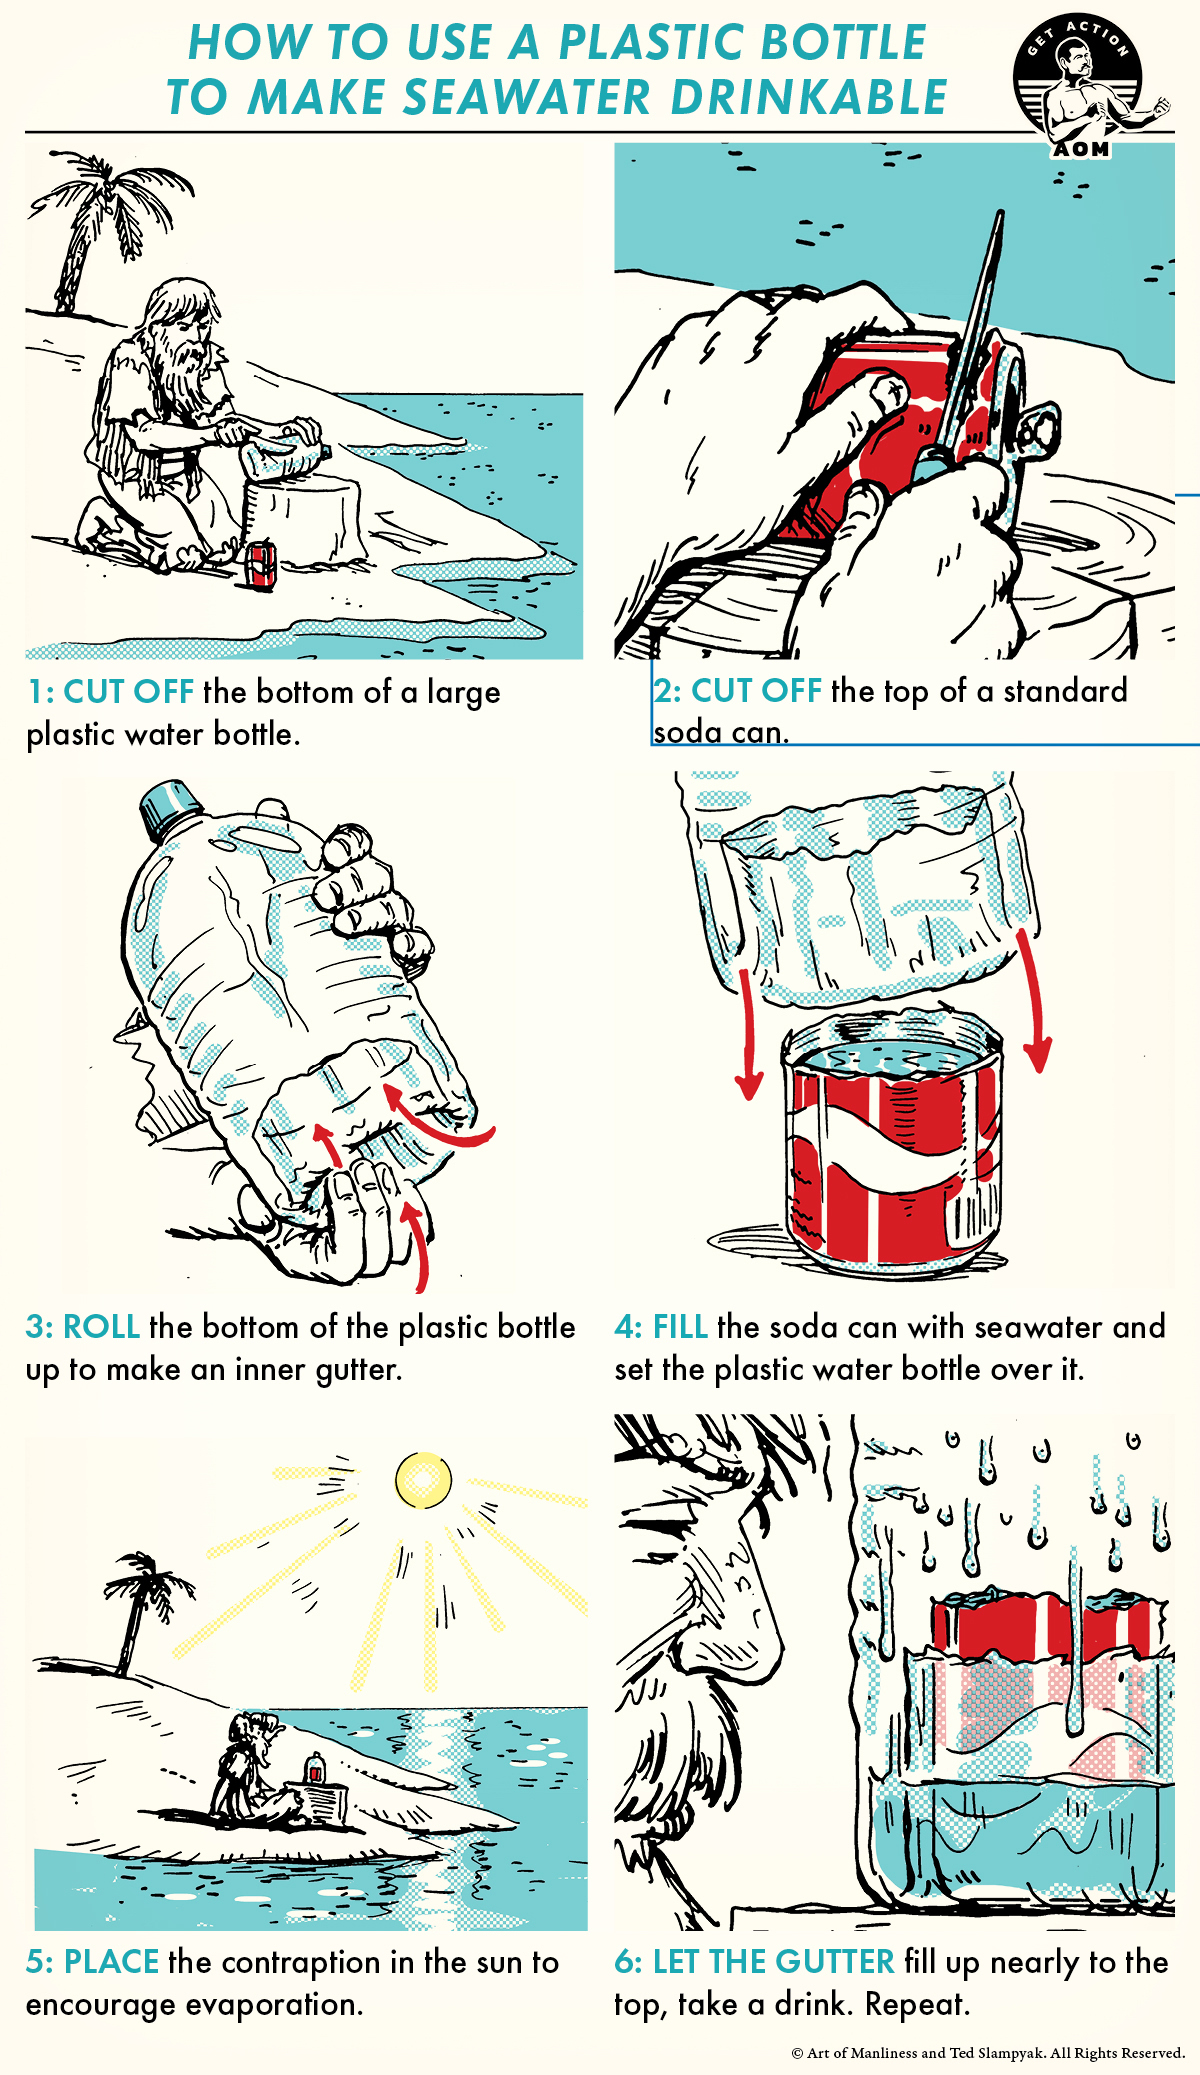 Comic guide how to make sea water drinkable.